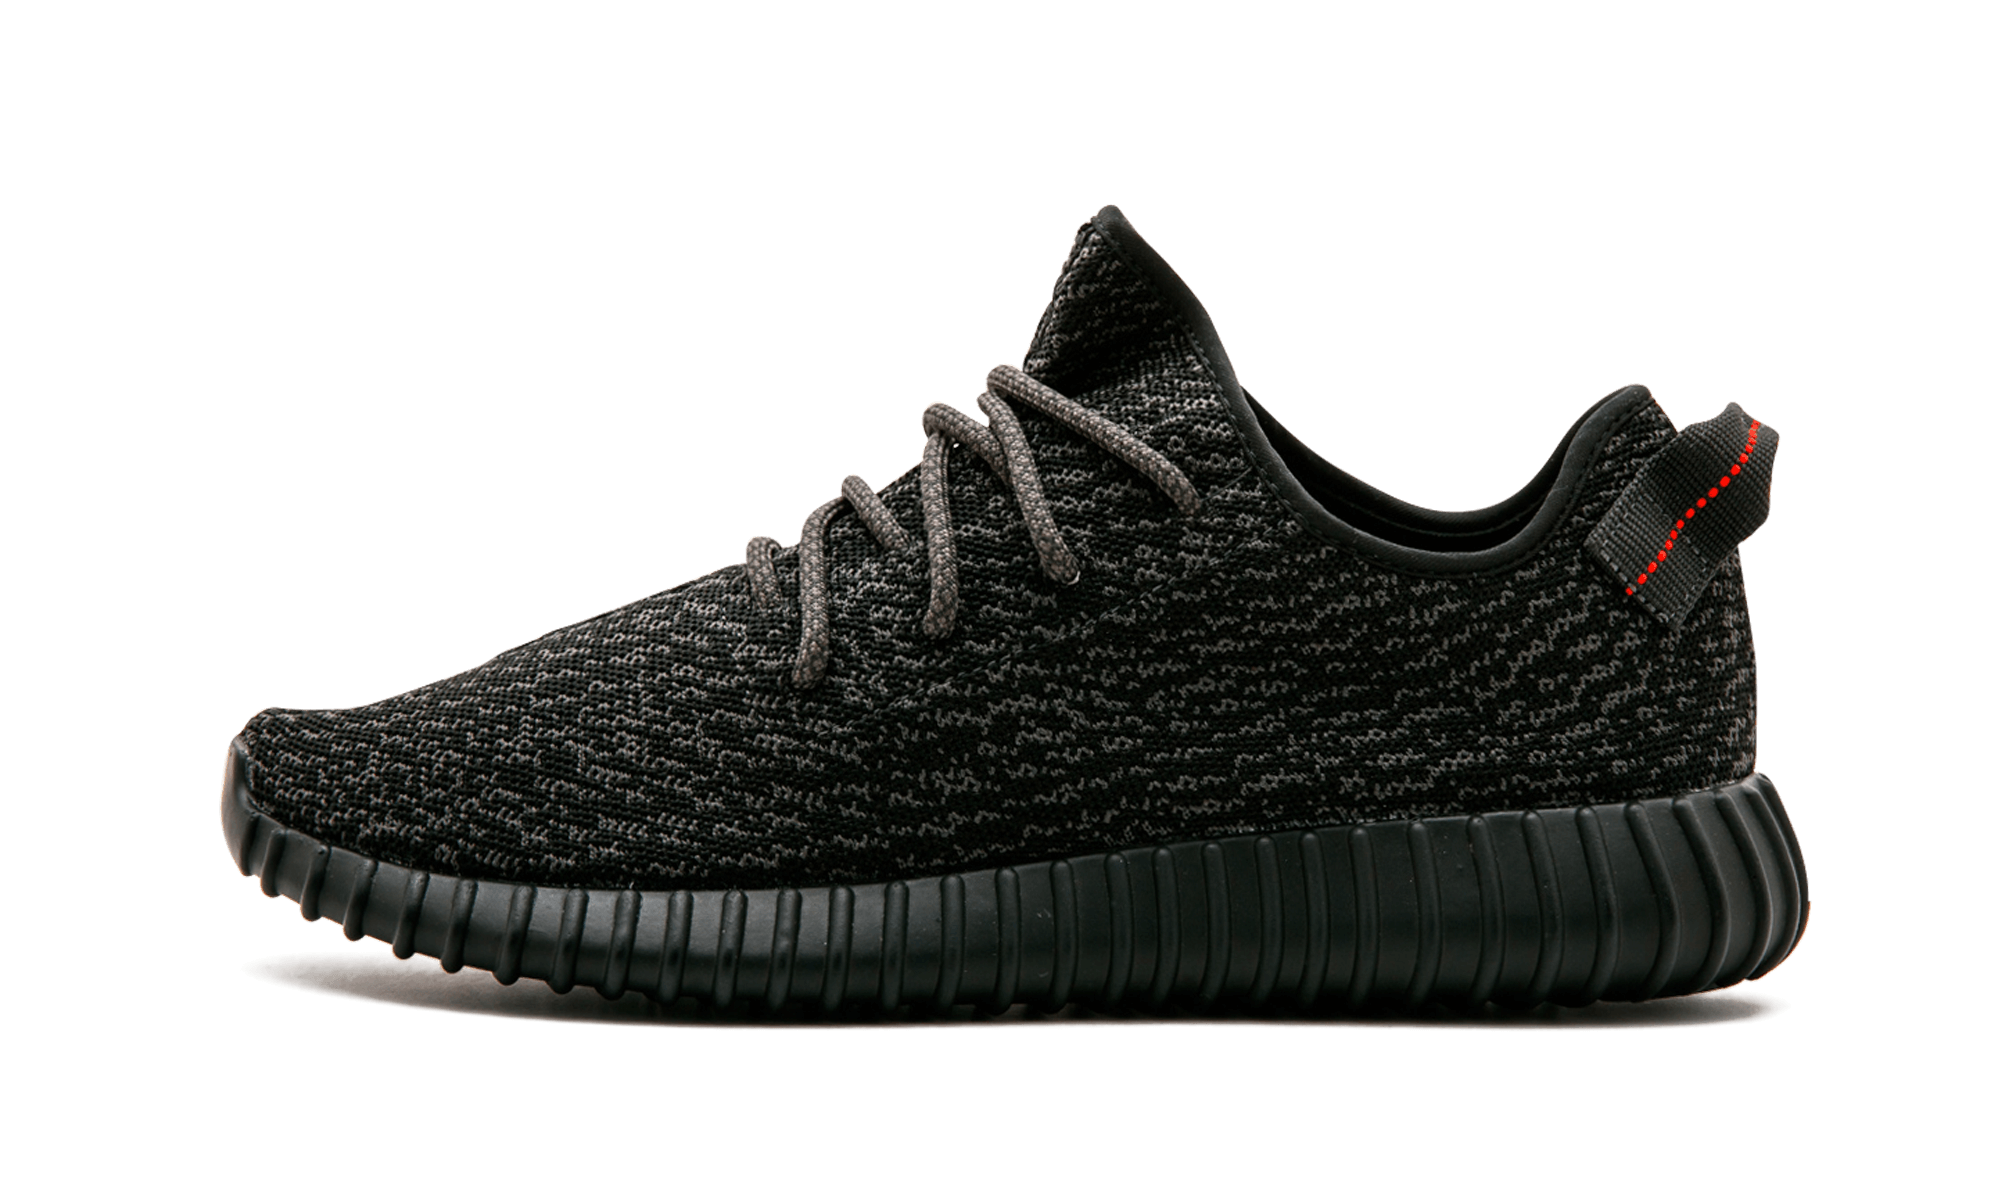 0c4551bbb742a Adidas Yeezy Boost 350 Pirate Black Pirate Black in 2019